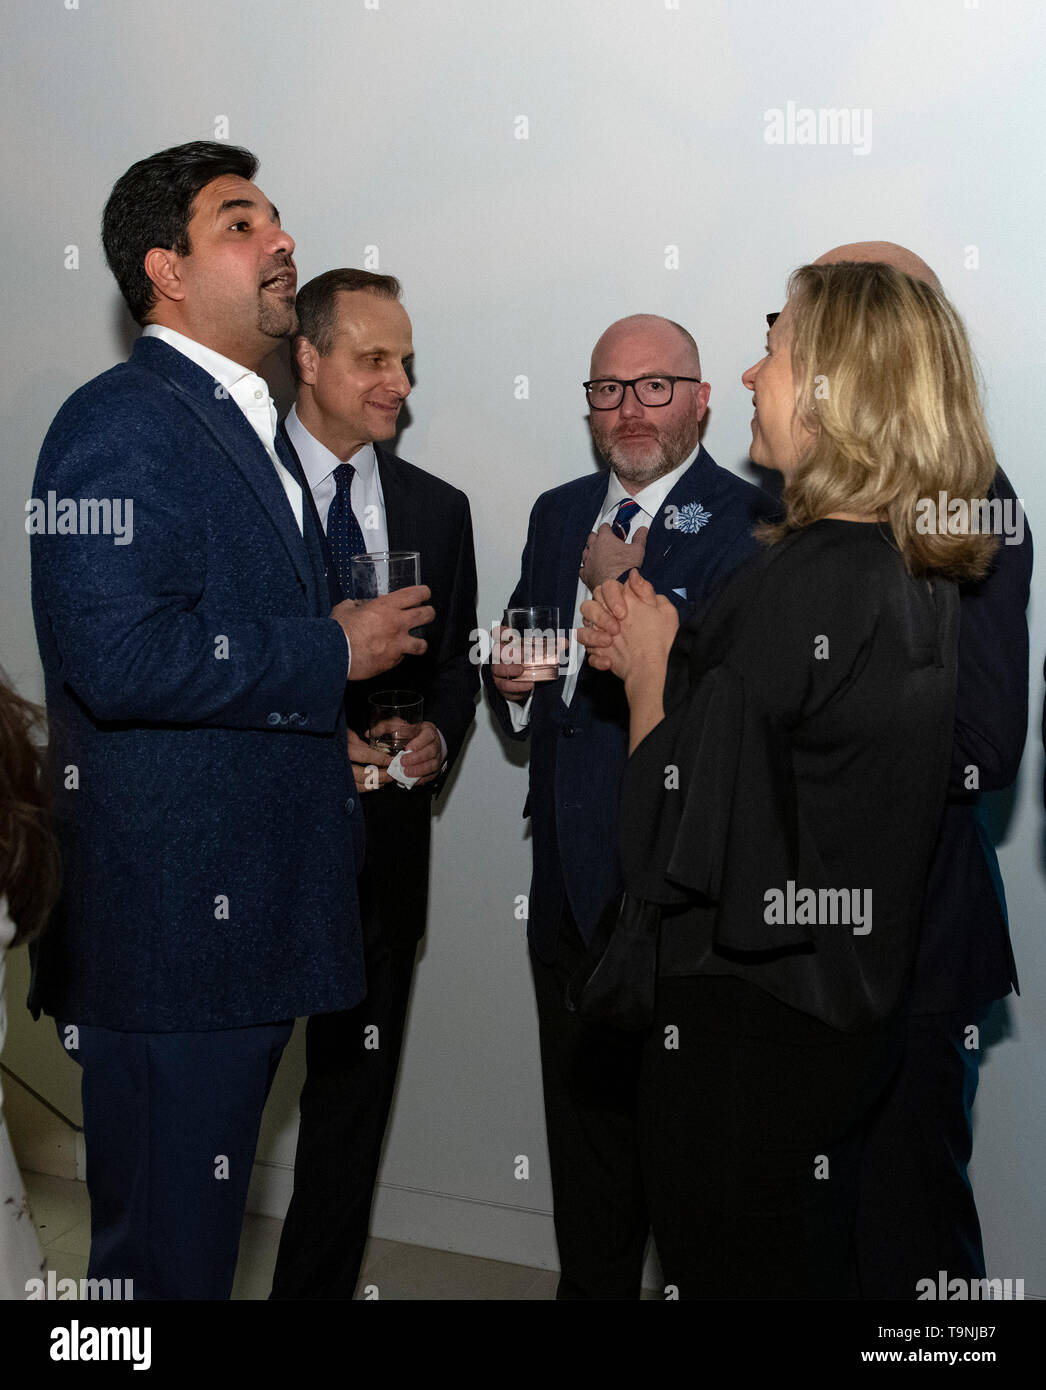 Washington, DC. 26th Apr, 2019. Qatar's Ambassador to the United States, Sheikh Meshal Bin Hamad Al-Thani, left, speaks with a small group of partygoers, including Qatar-America Institute Executive Director Paul Hamil, right center, during Qatar's White House Correspondents Association pre-party in Washington, DC, on April 26, 2019. Credit: Ron Sachs/CNP | usage worldwide Credit: dpa/Alamy Live News - Stock Image